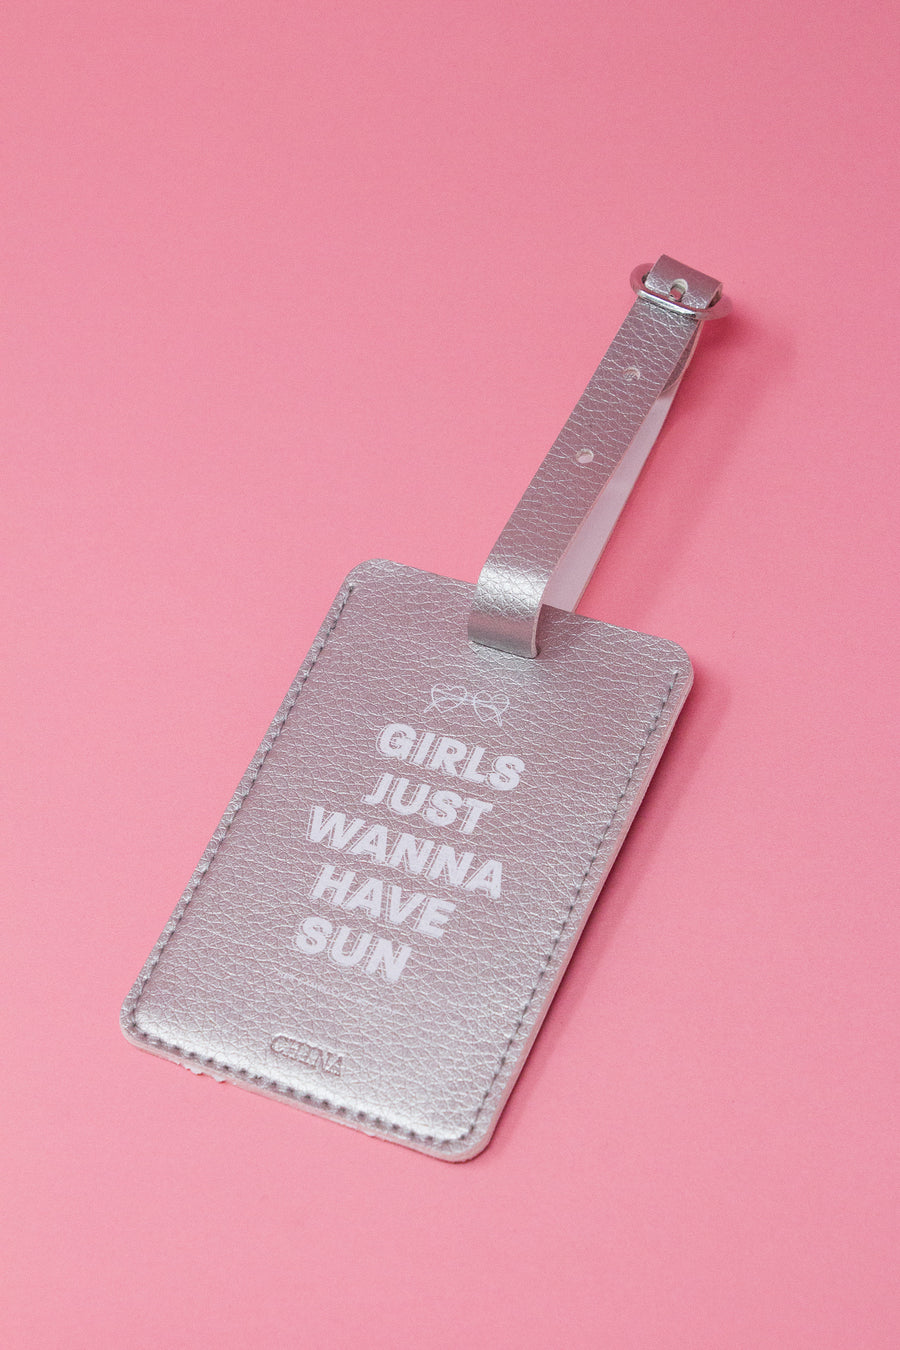 Girls Just Wanna Have Sun Luggage Tag